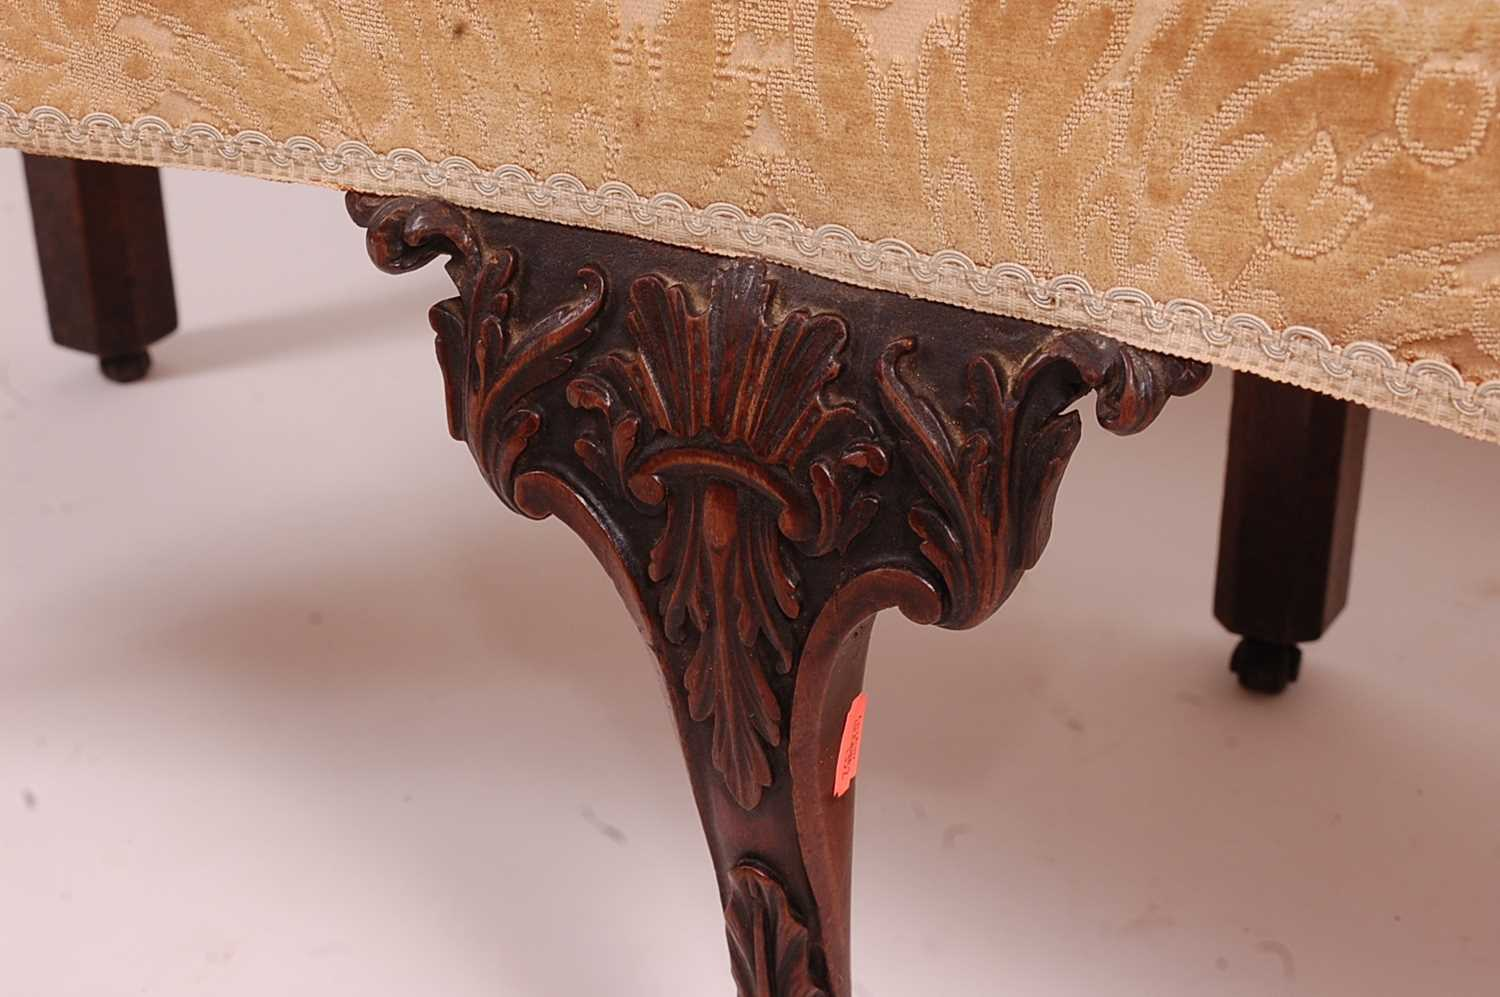 A George III mahogany framed window seat, of serpentine outline, having an upholstered top with - Image 4 of 18